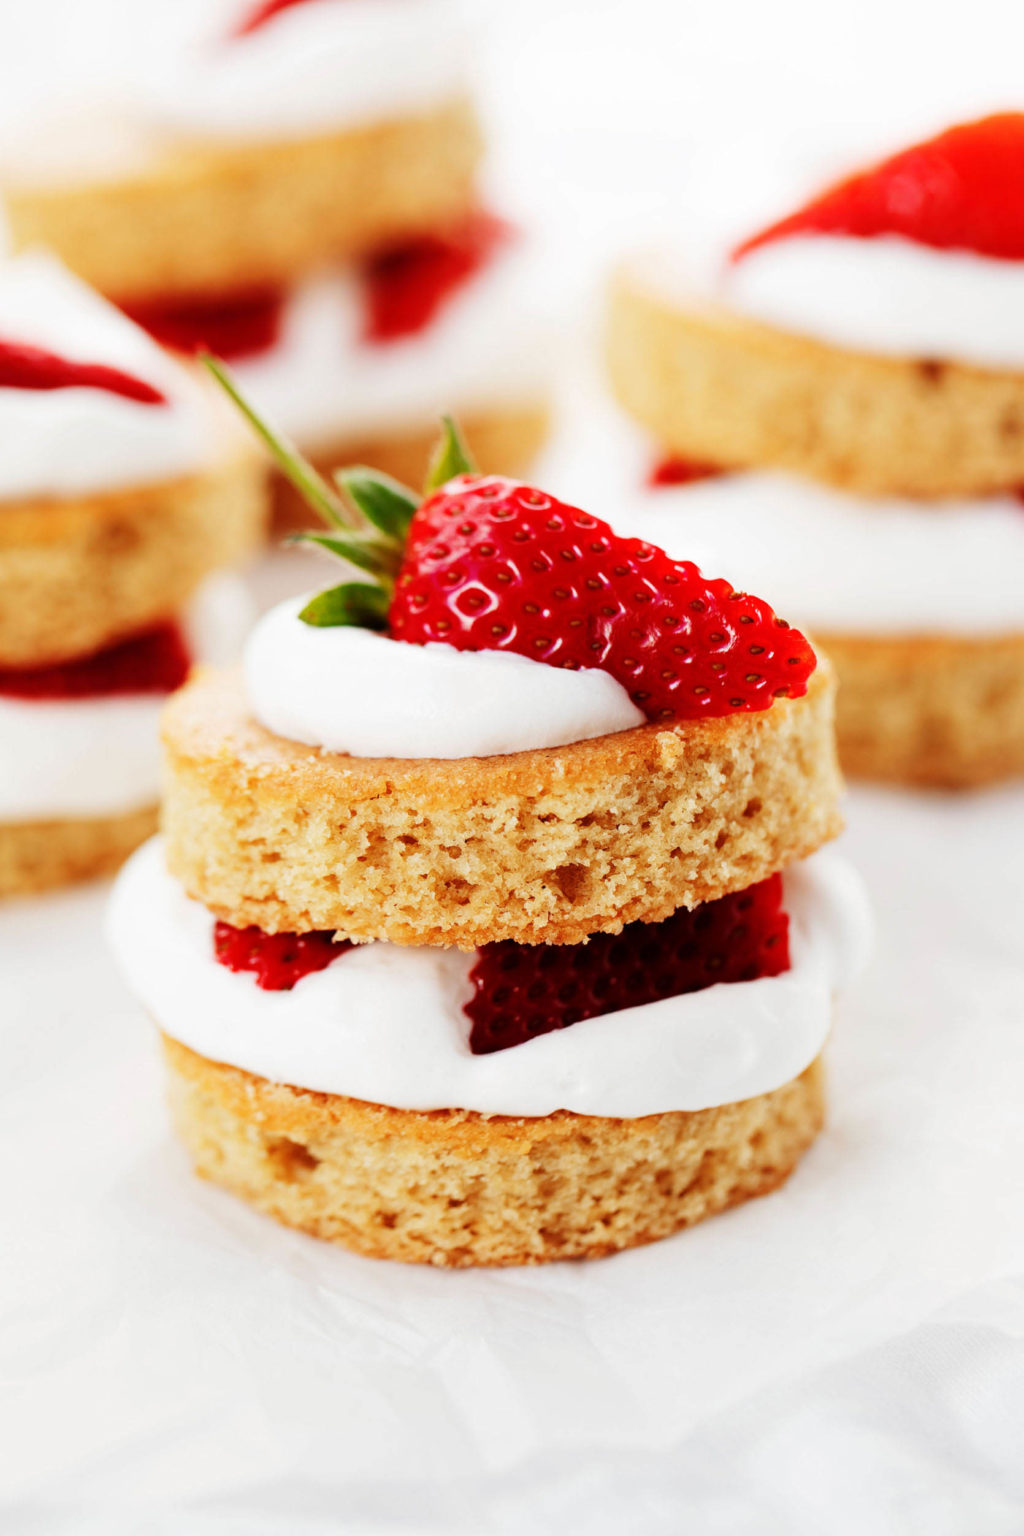 Two layers of vegan vanilla cake have been turned into strawberry shortcake, decorated with whipped cream and quartered strawberries.